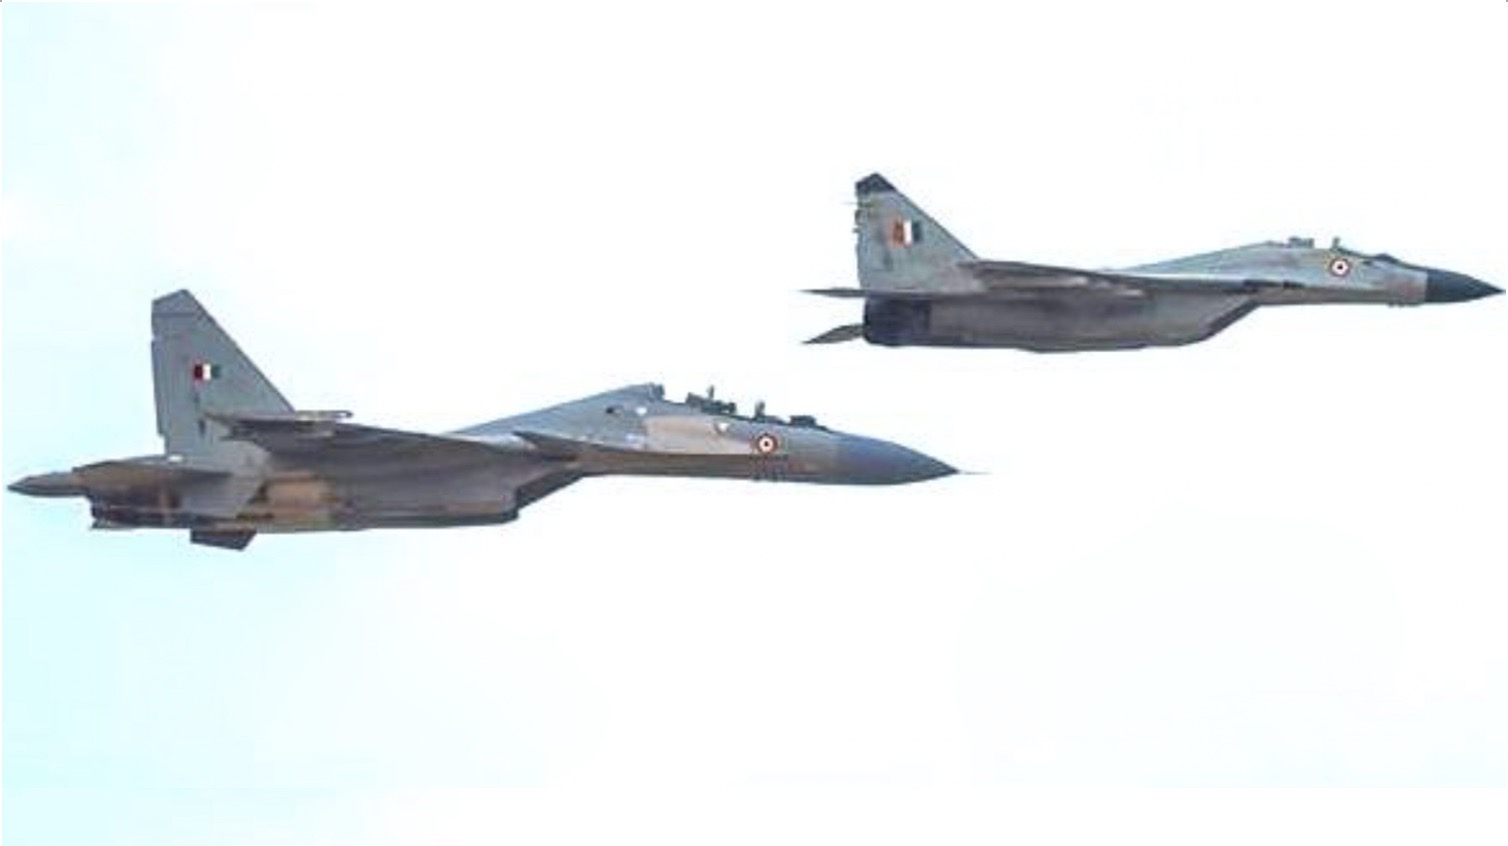 Indian air force Su-30MKI and MiG-29